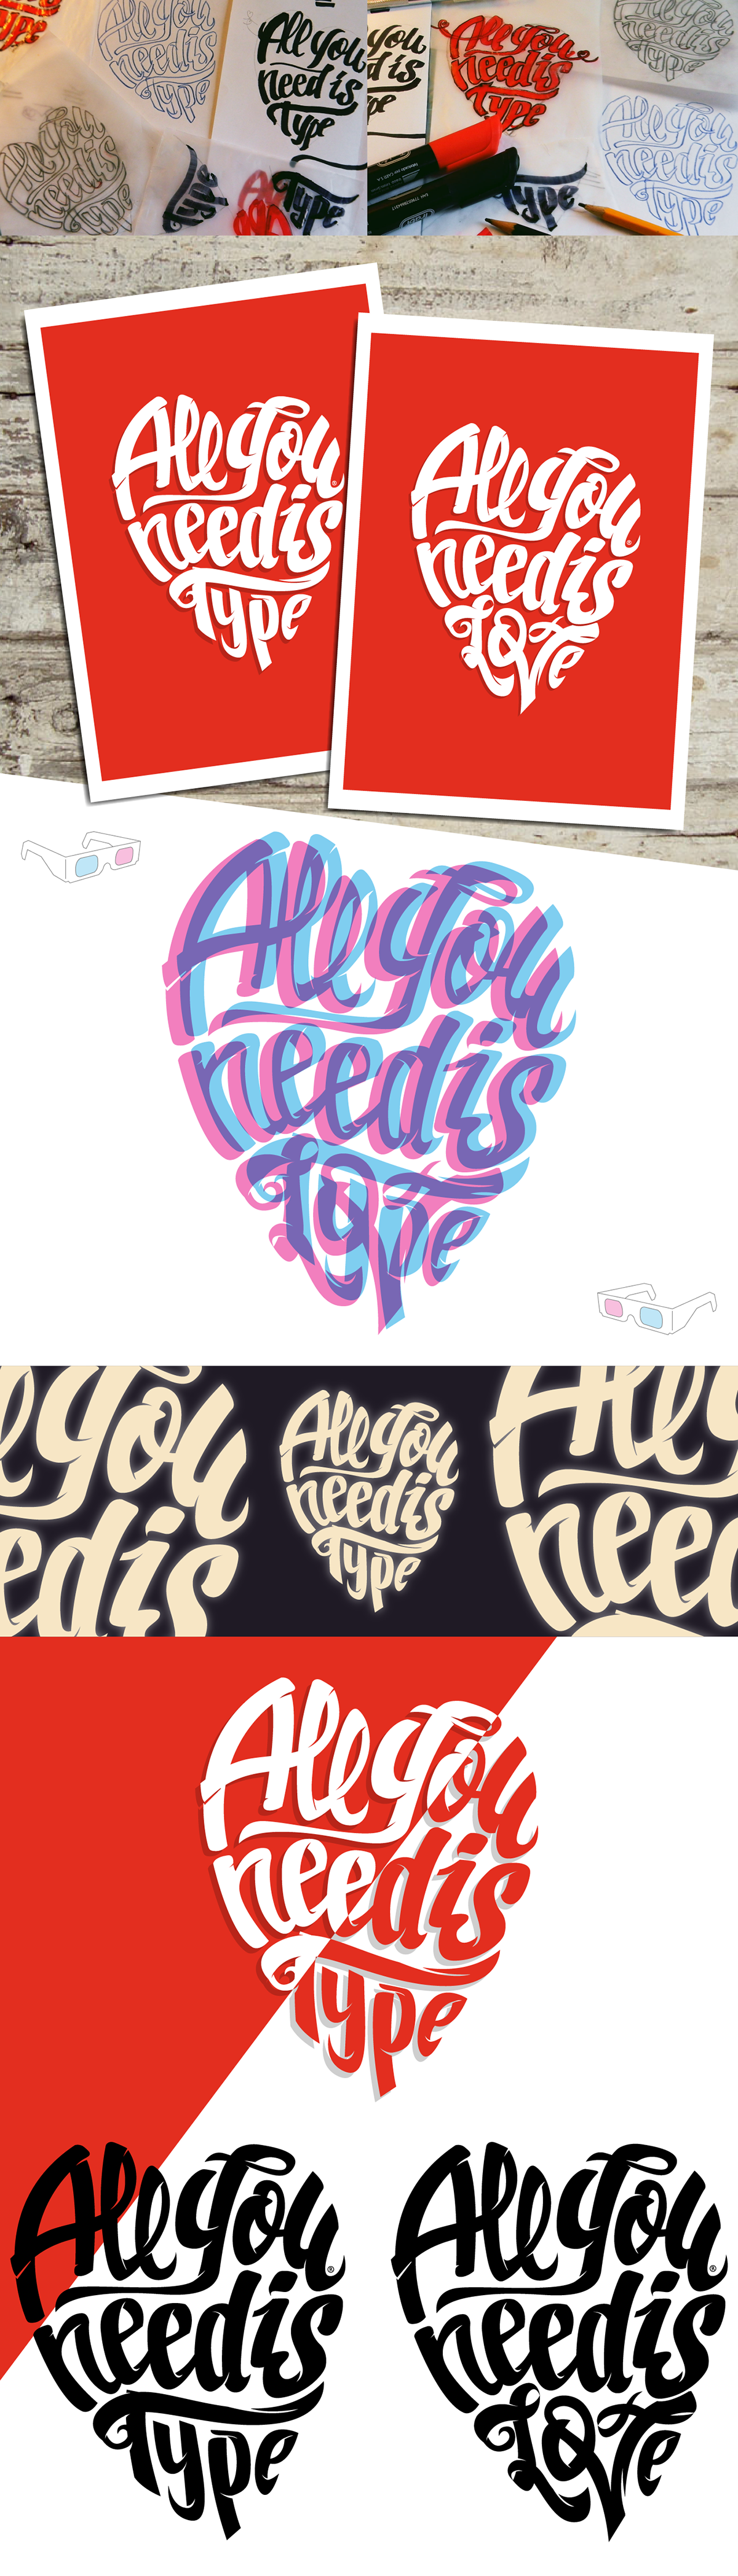 Love musica the Beatles logo color red lettering letters type loving foto amor pasion rojo